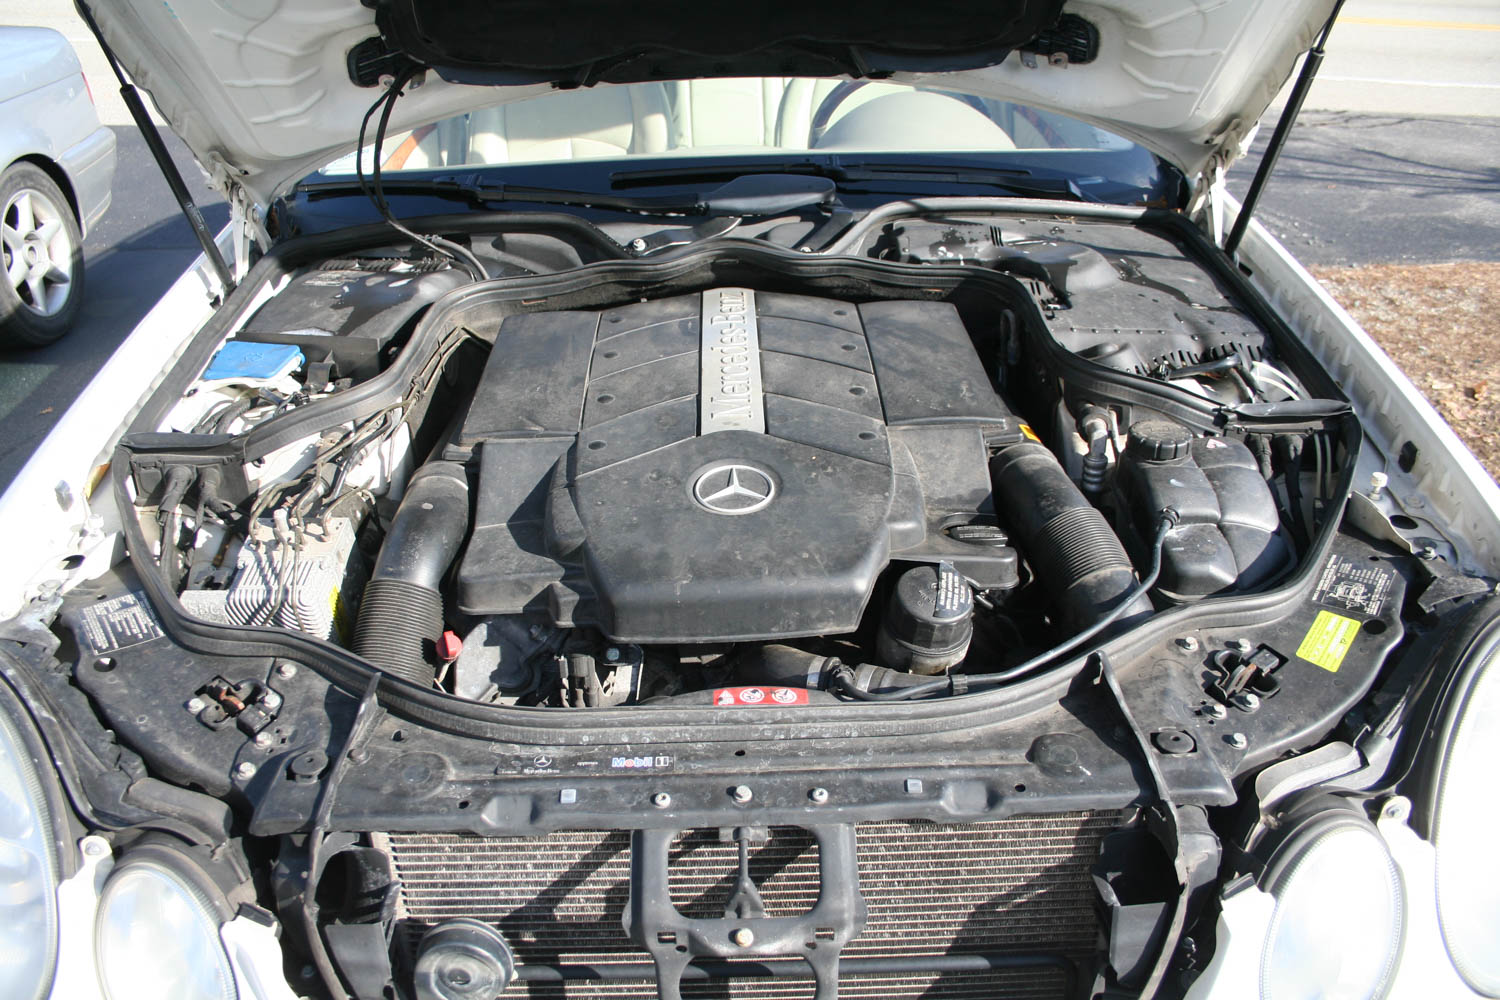 The 302-hp 5.0-liter motor, surprisingly, did not light my fire.